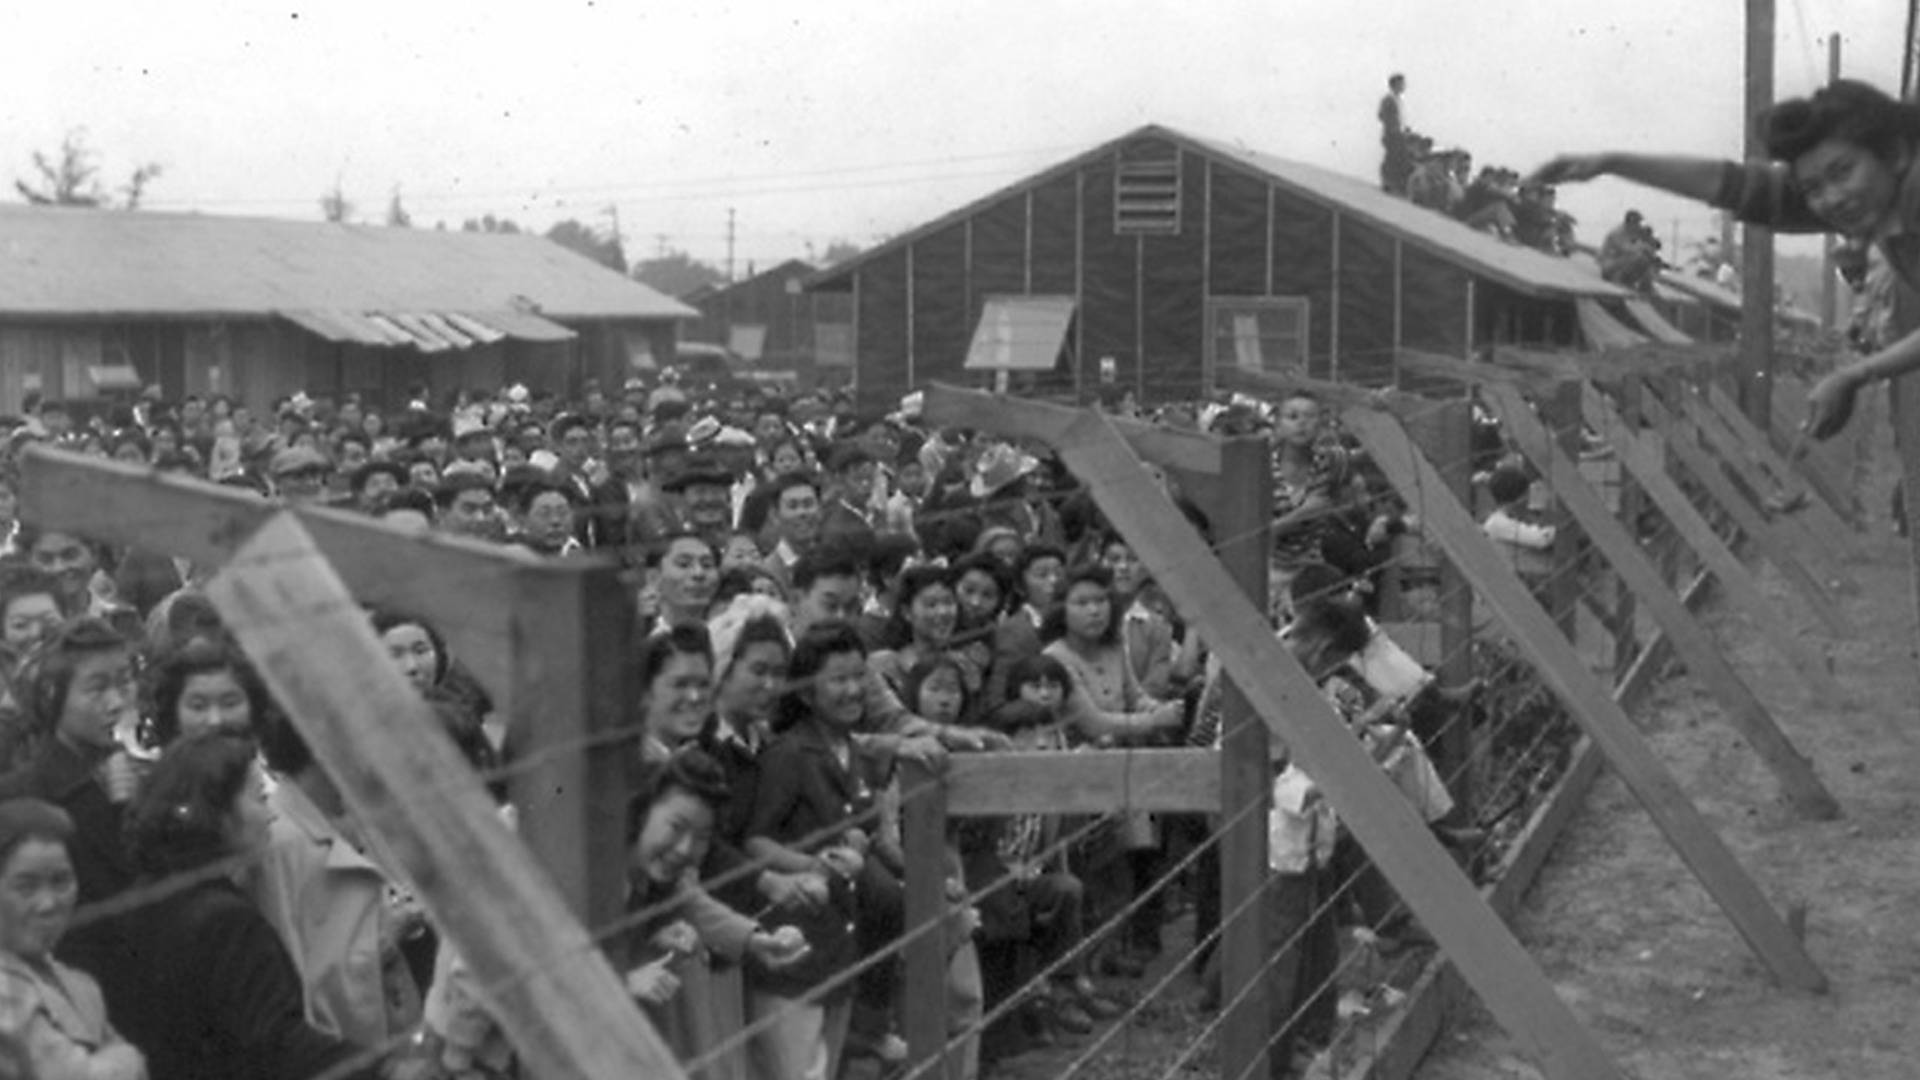 japanese internment during wwii essay The canadian government prides itself on upholding human rights, has its history truly reflected this image throughout the years 1939-1945, canadian interment camps affected canada's history negatively during this time period, japanese canadians were showed racism, put into internment camps.